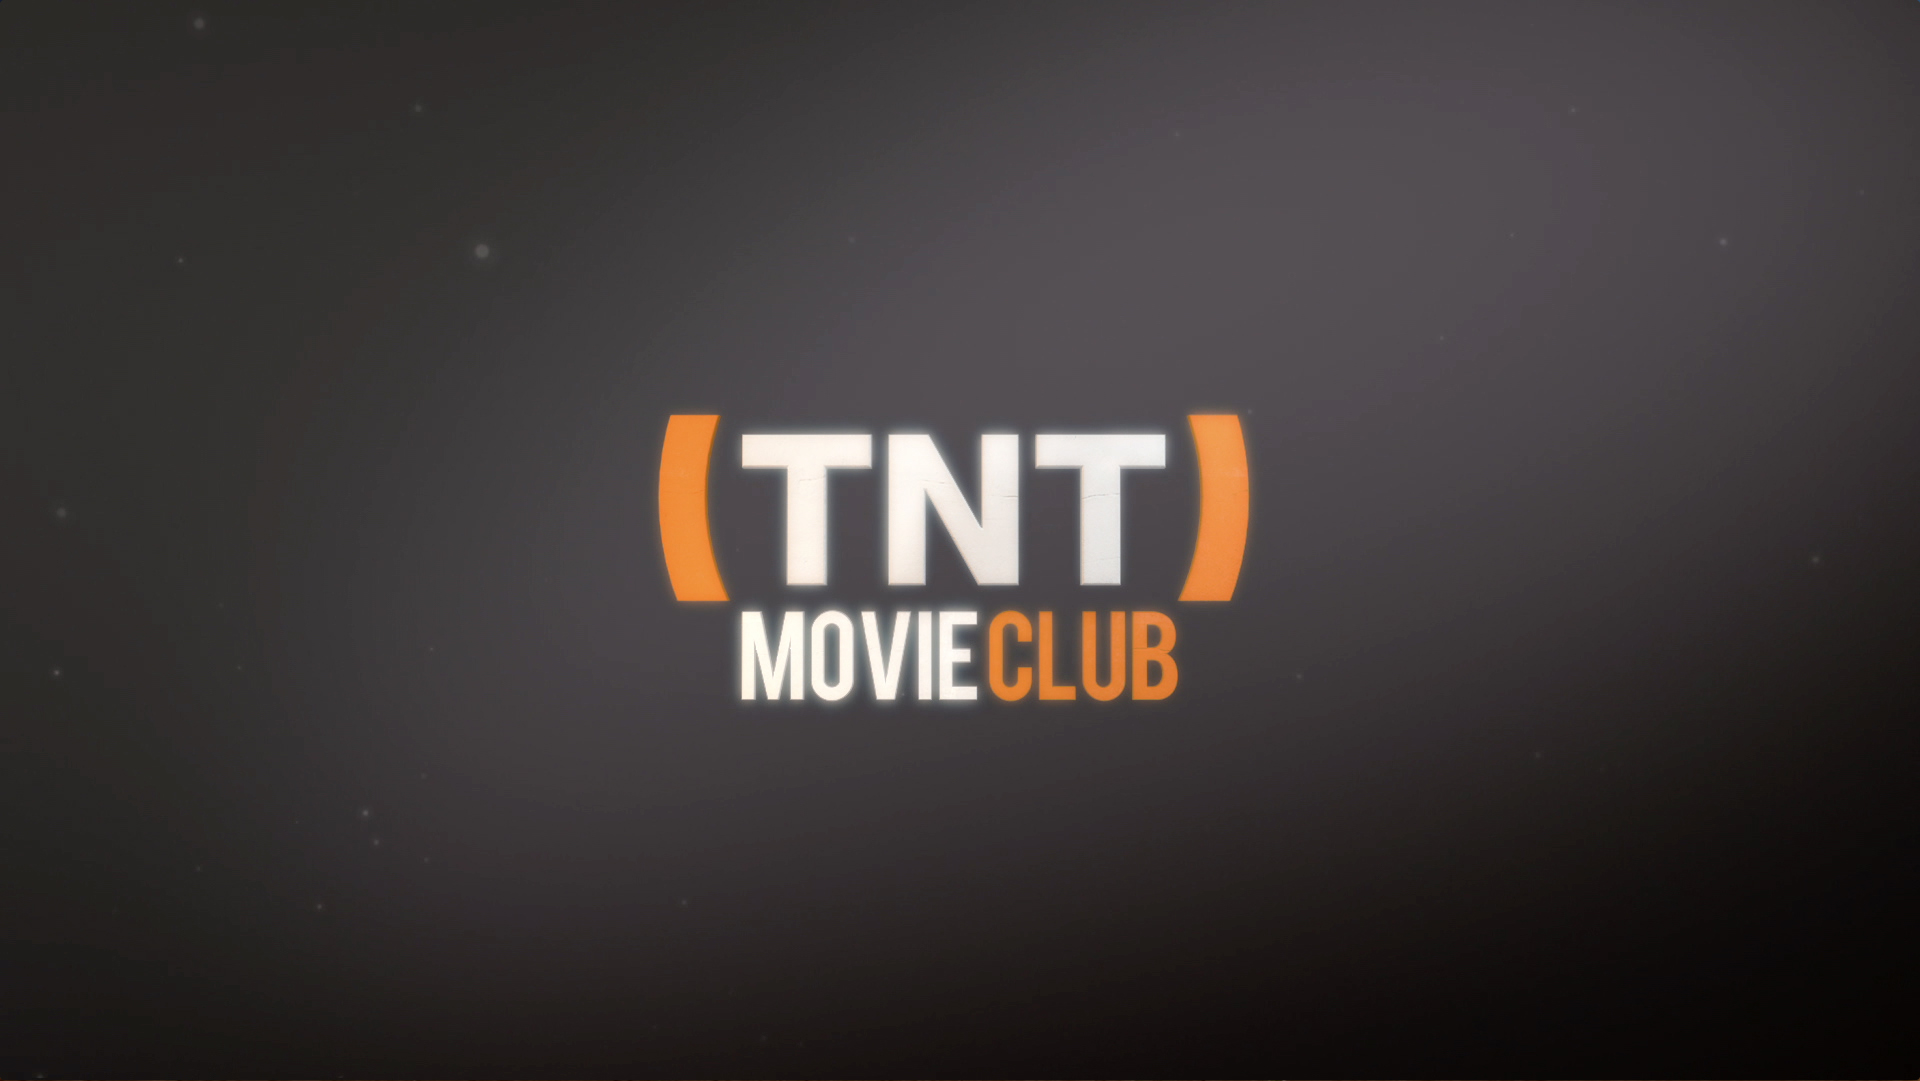 TNT_MOVIE_CLUB.jpg